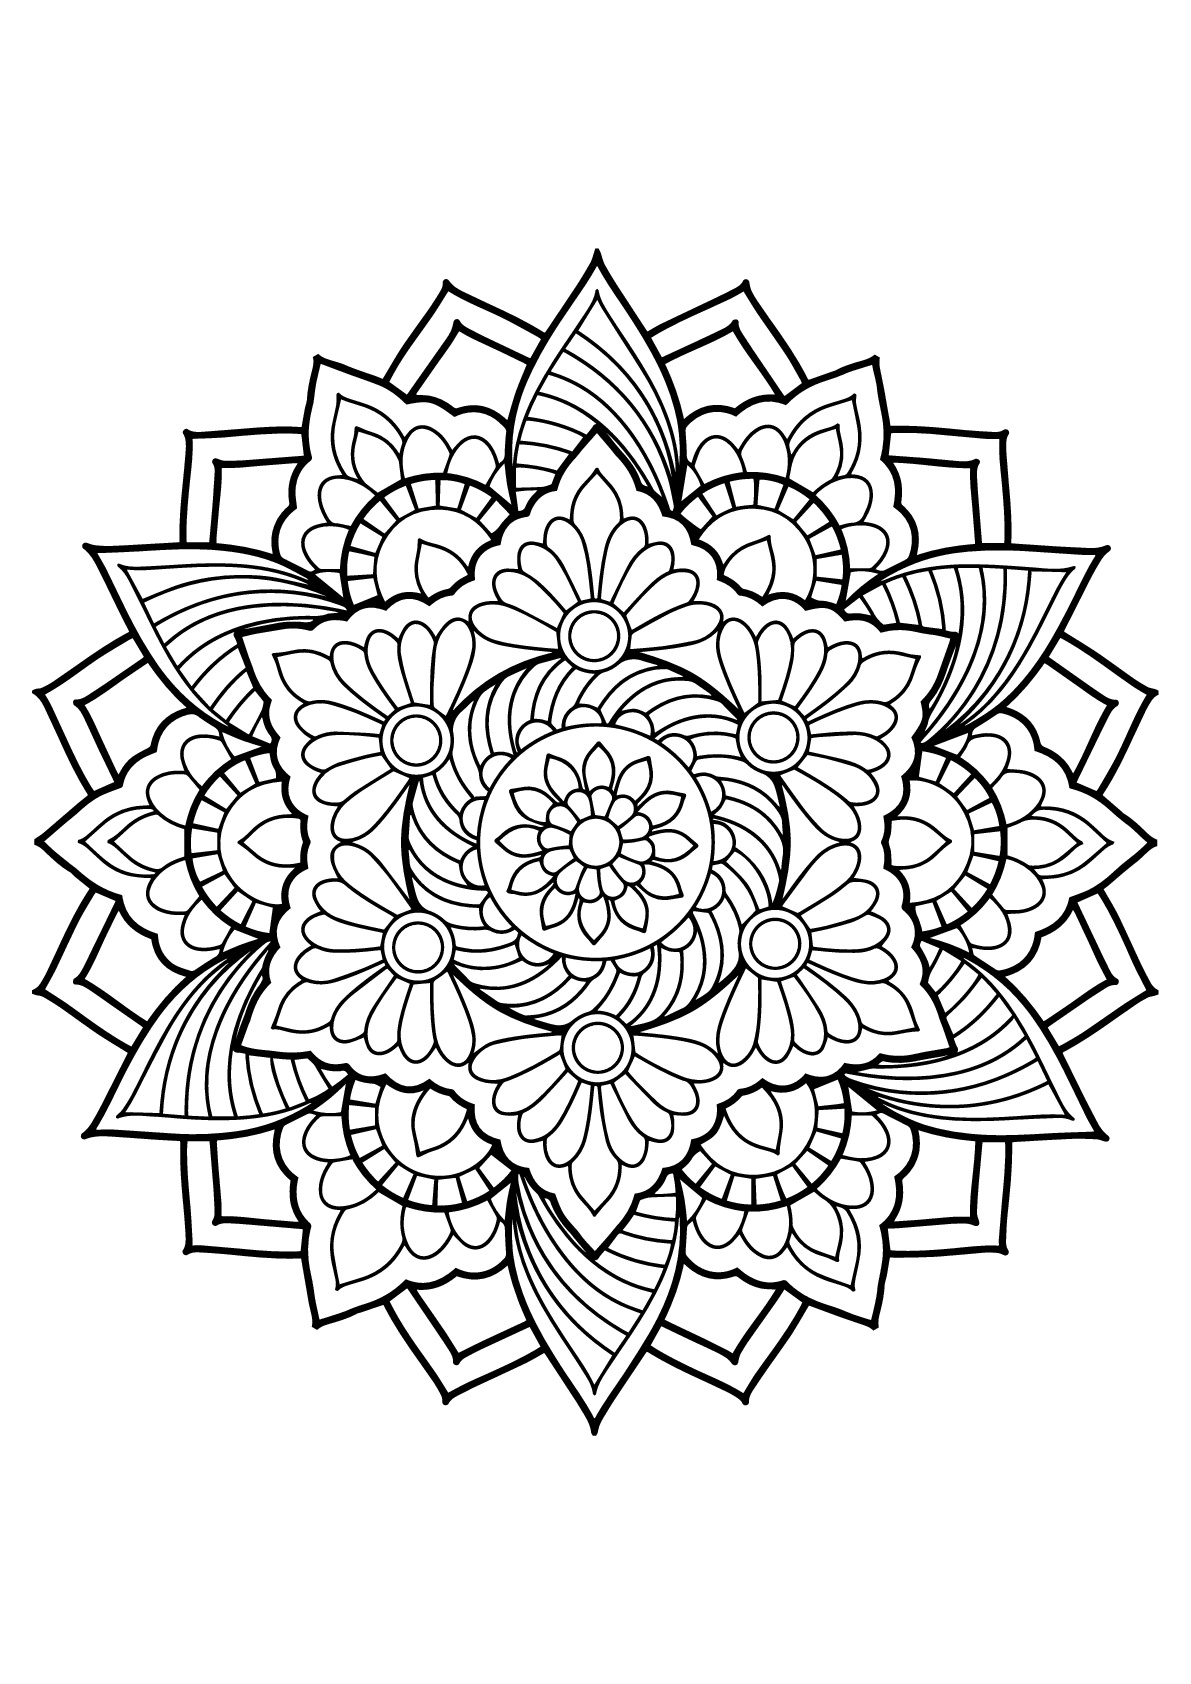 free mandalas to print and color coloring pages on pinterest coloring mandala coloring free print color and to mandalas